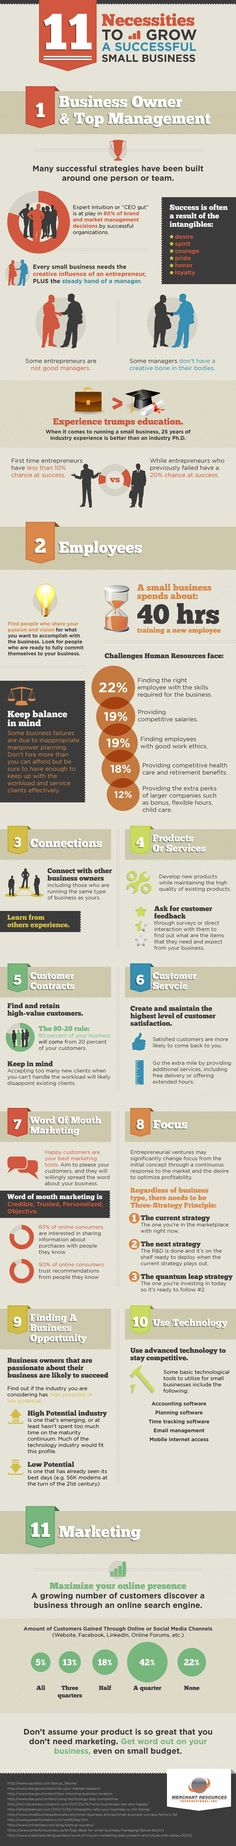 11 necessities to grow a successful small business #infographic